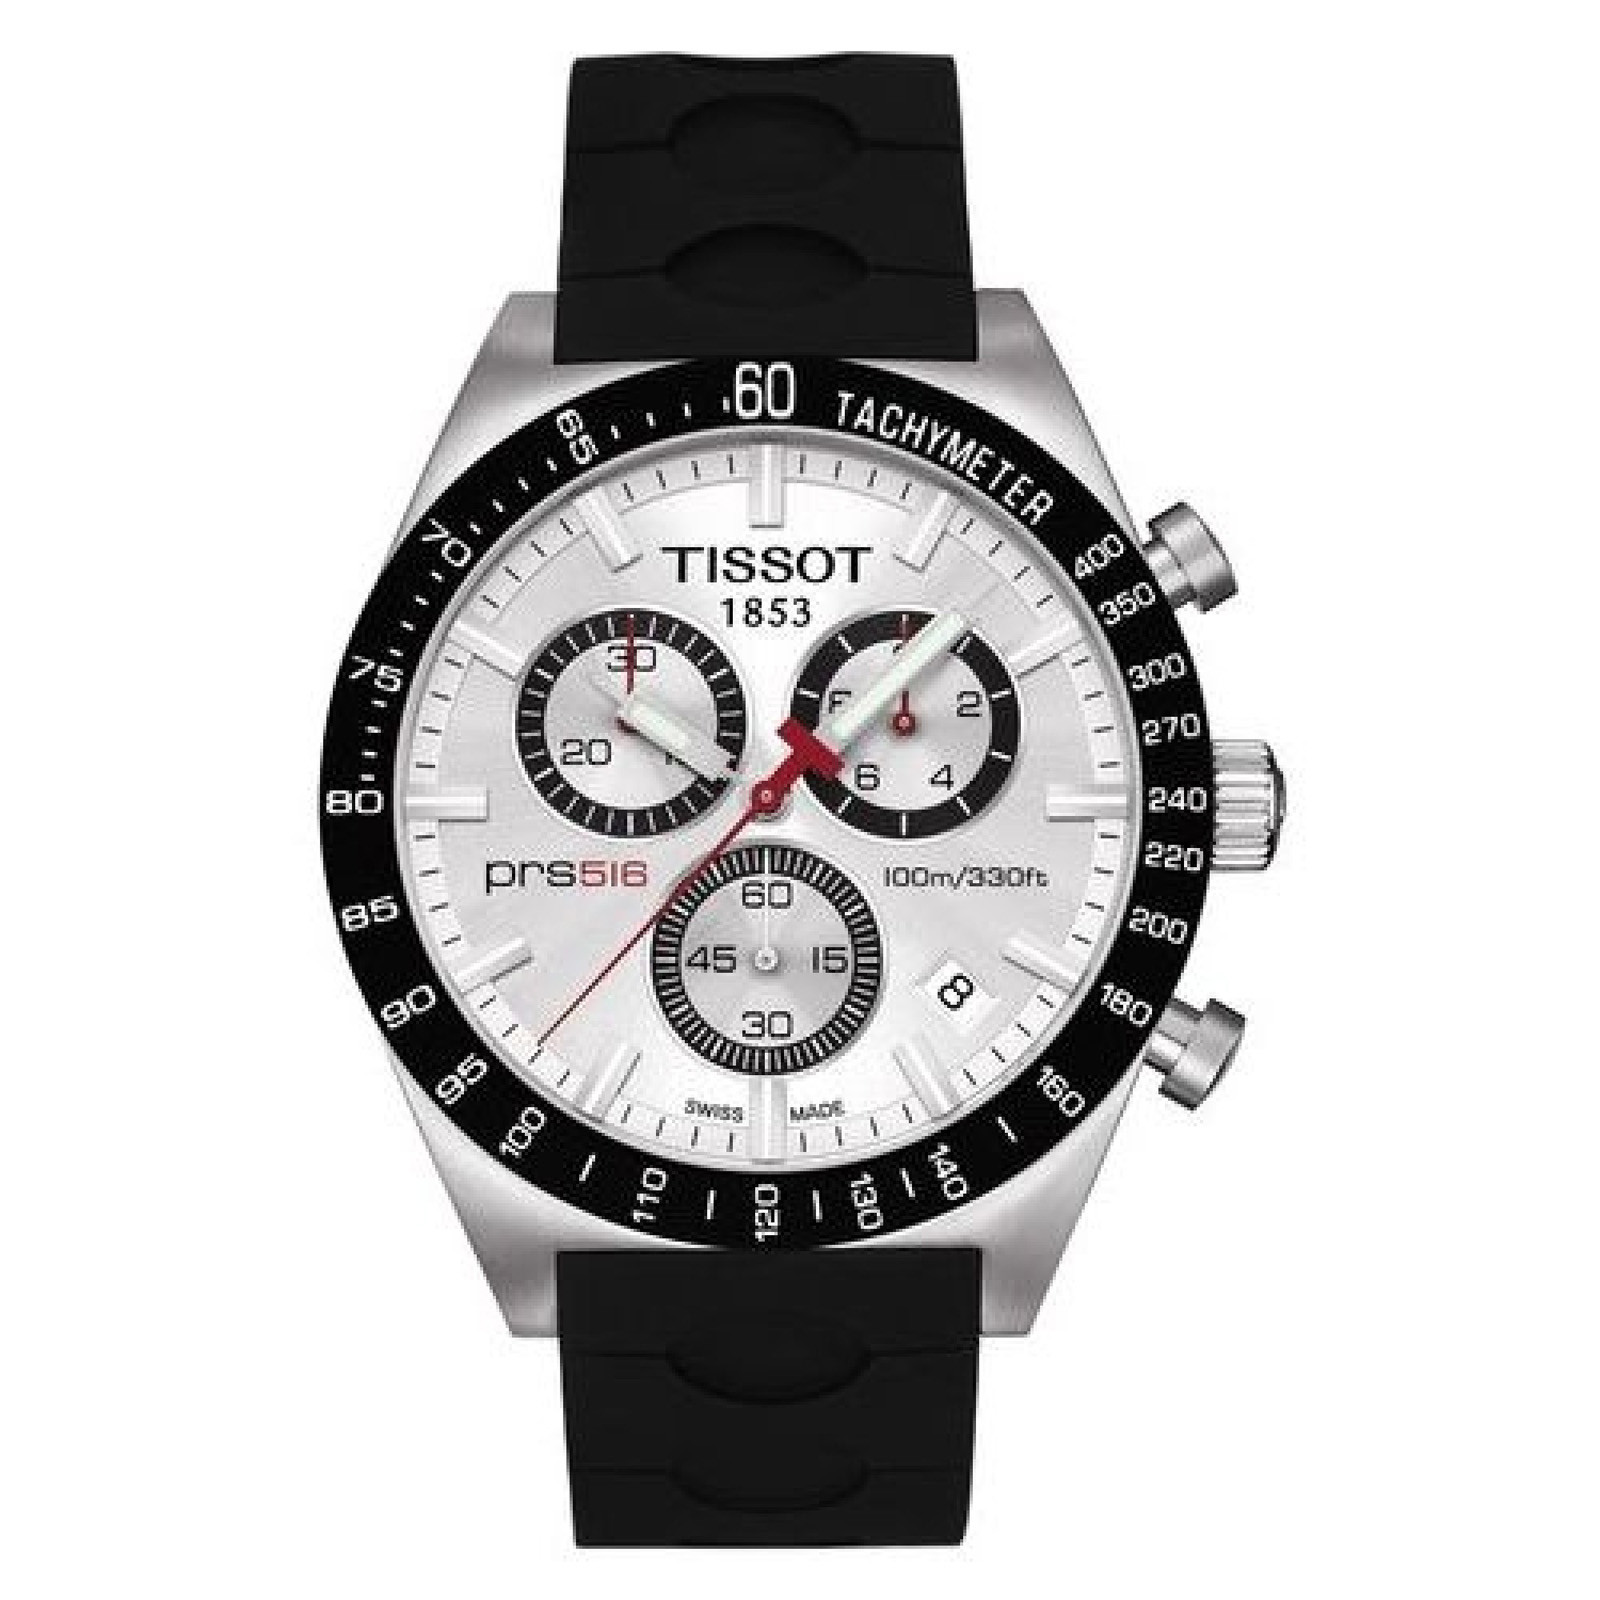 New Tissot PRS516 Chrono